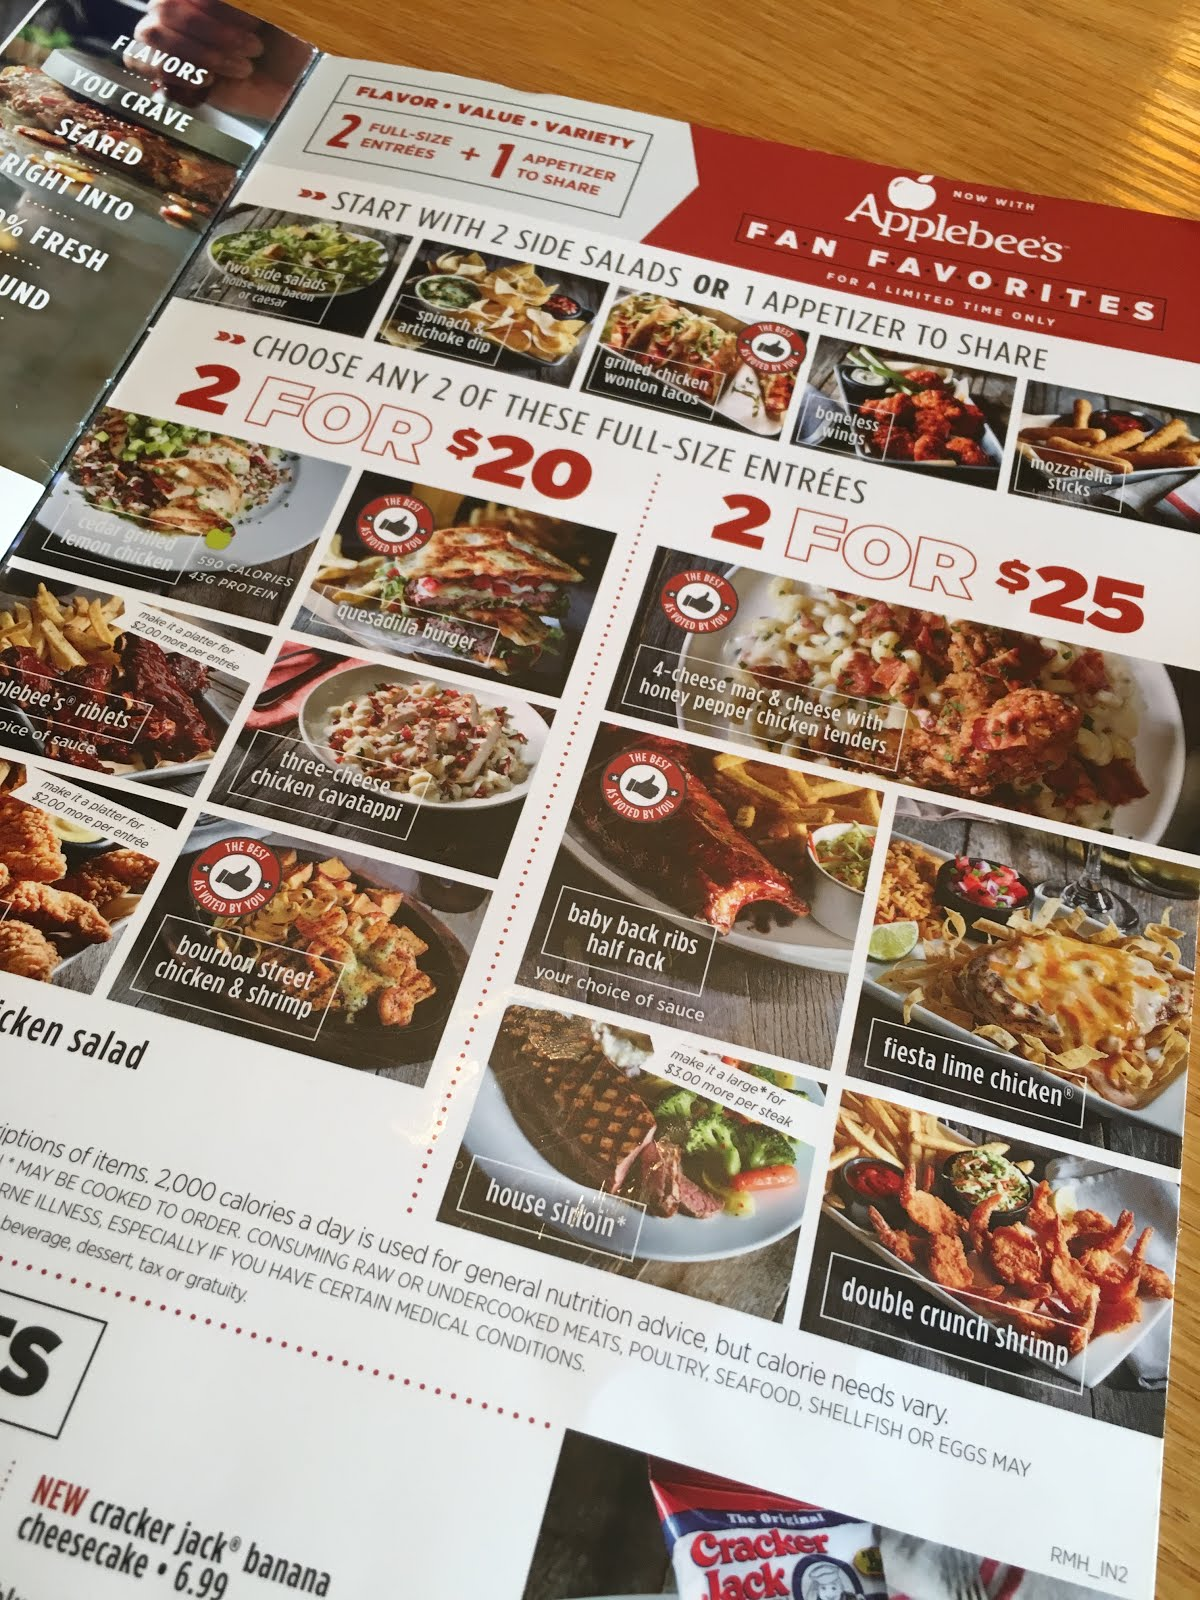 2 for $20 at applebees